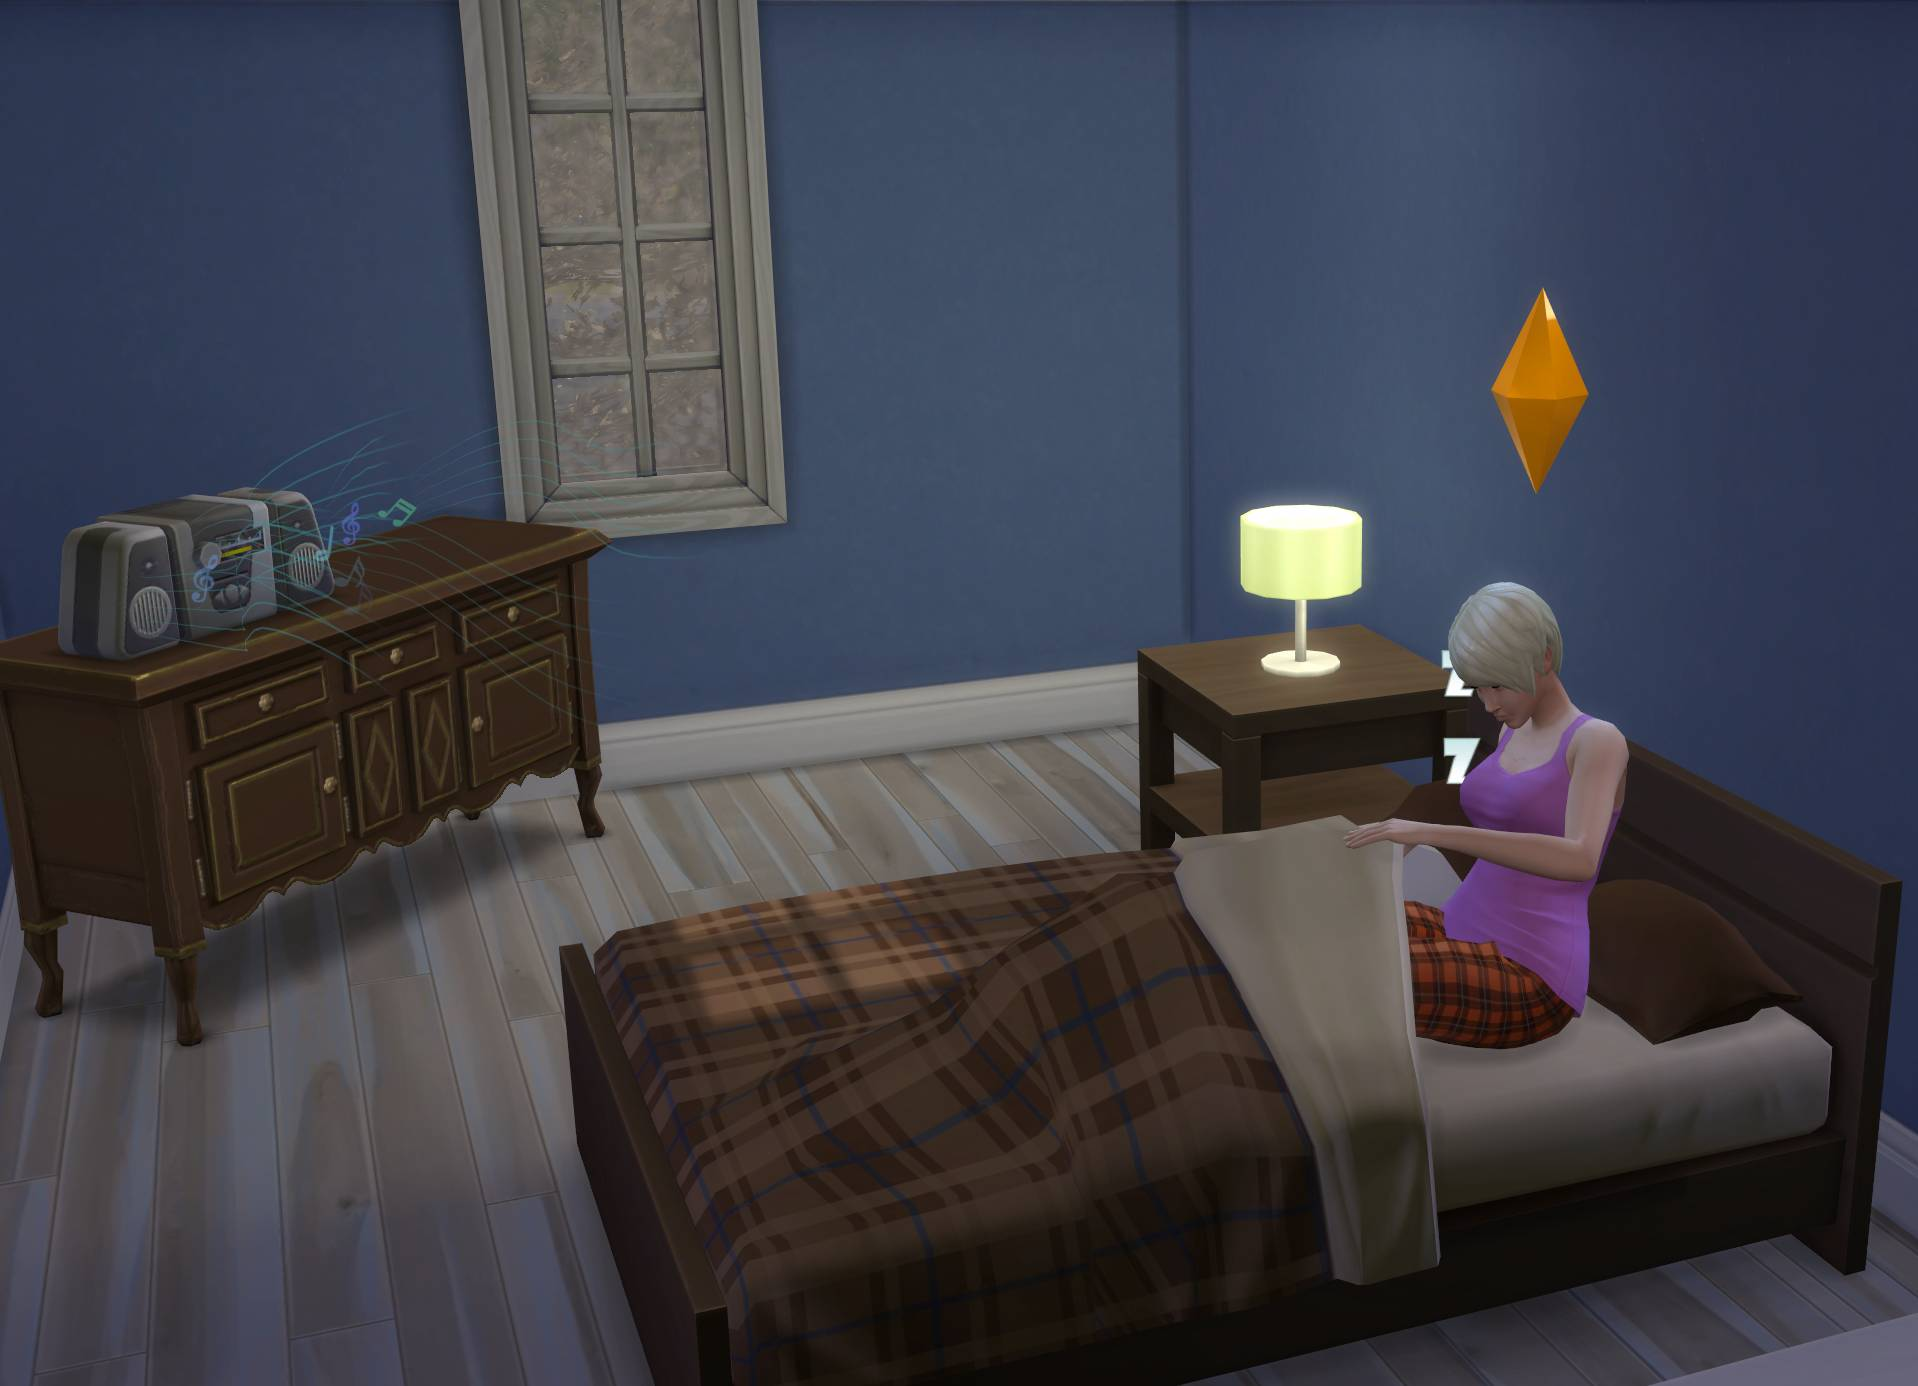 Sims won't sleep – Crinric'ts Sims 4 Help Blog